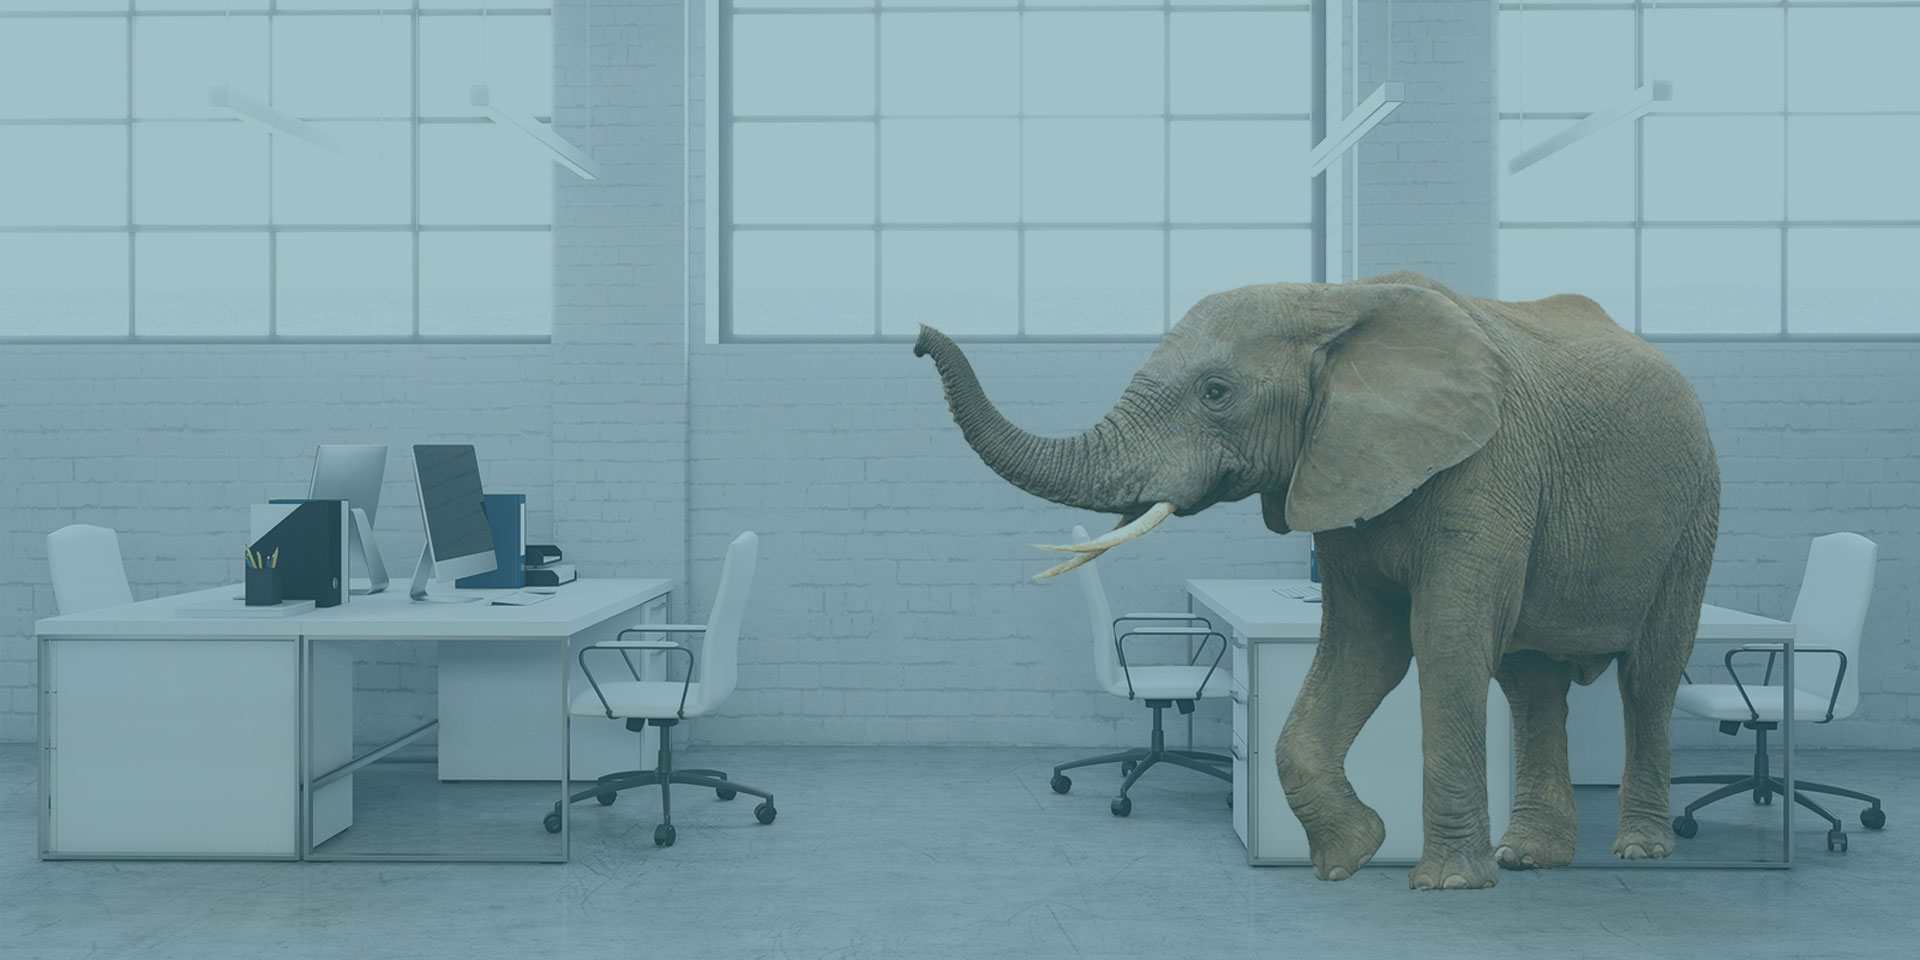 Elephant standing in a modern office with white desks and chairs, large paned windows and brick walls